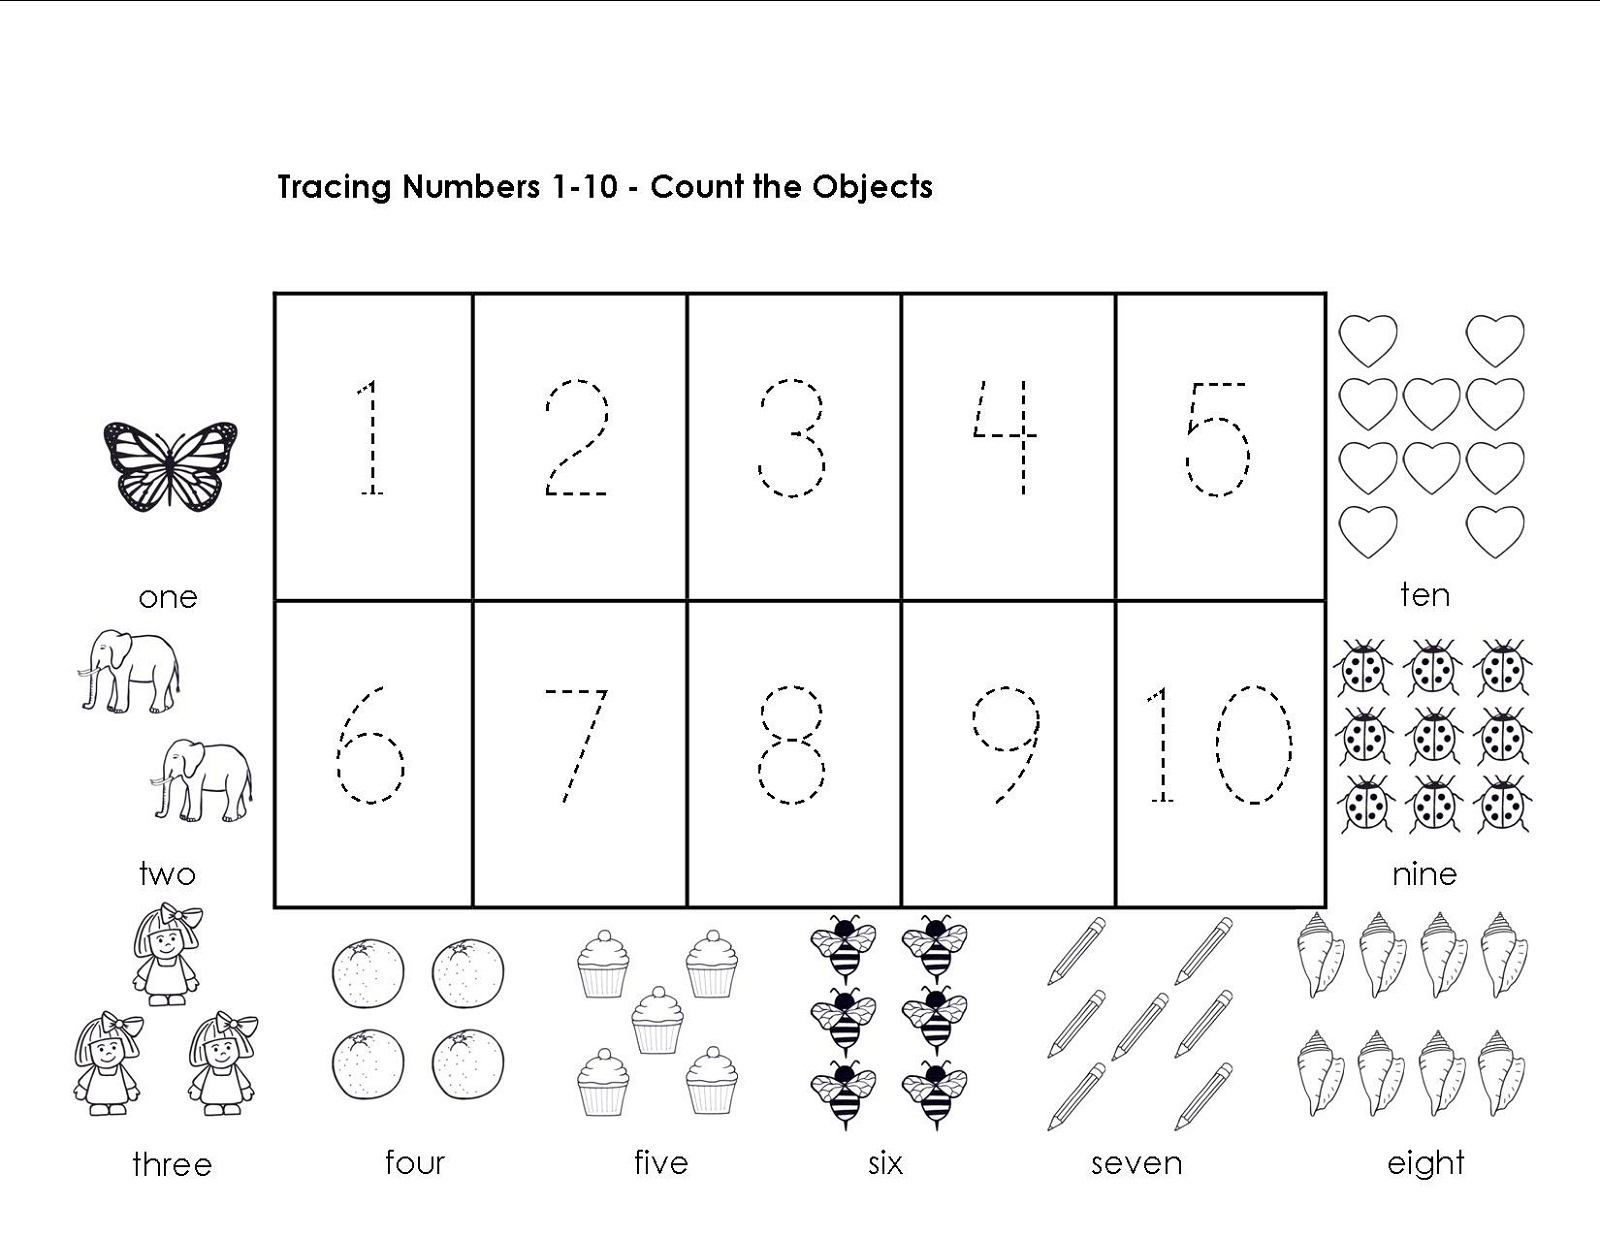 worksheet Number 10 Worksheets number 10 worksheets abitlikethis tracing numbers 1 activity shelter